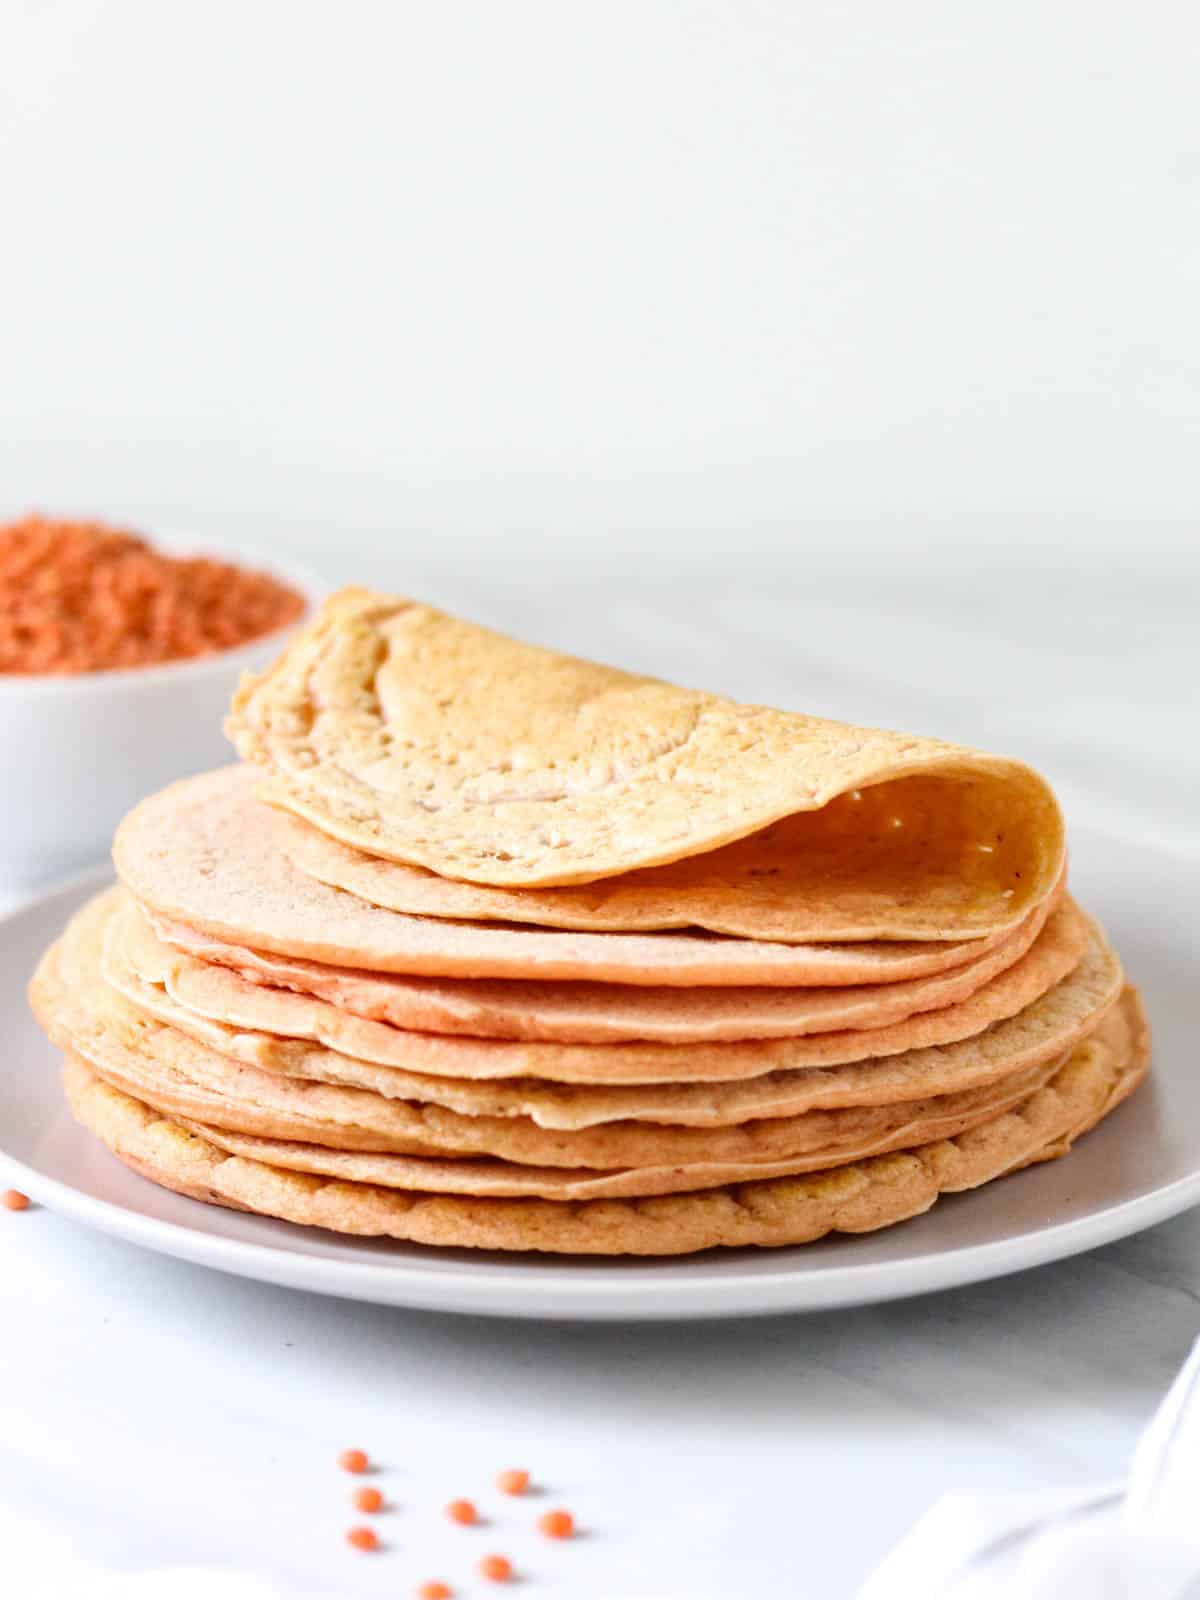 A side view of a stack of lentil tortillas on a purple plate.